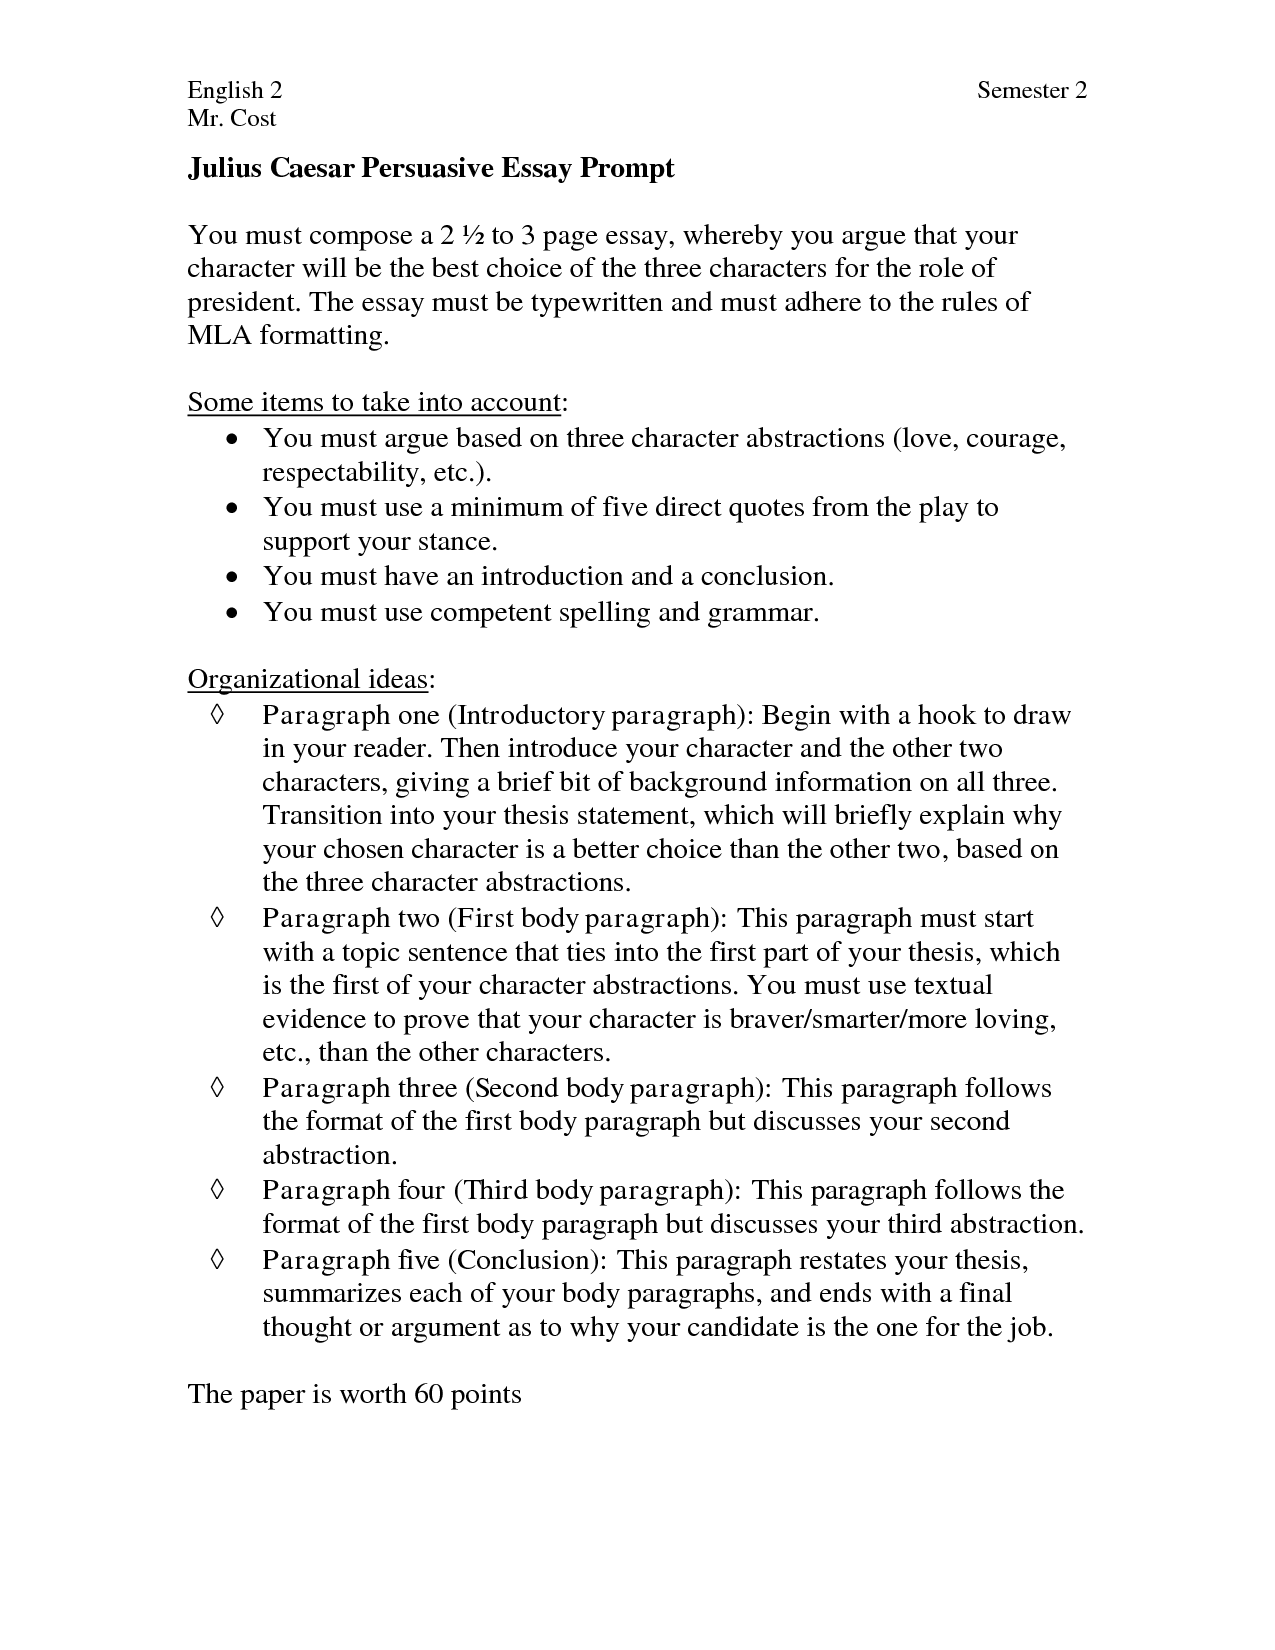 Proper paragraph spacing essay